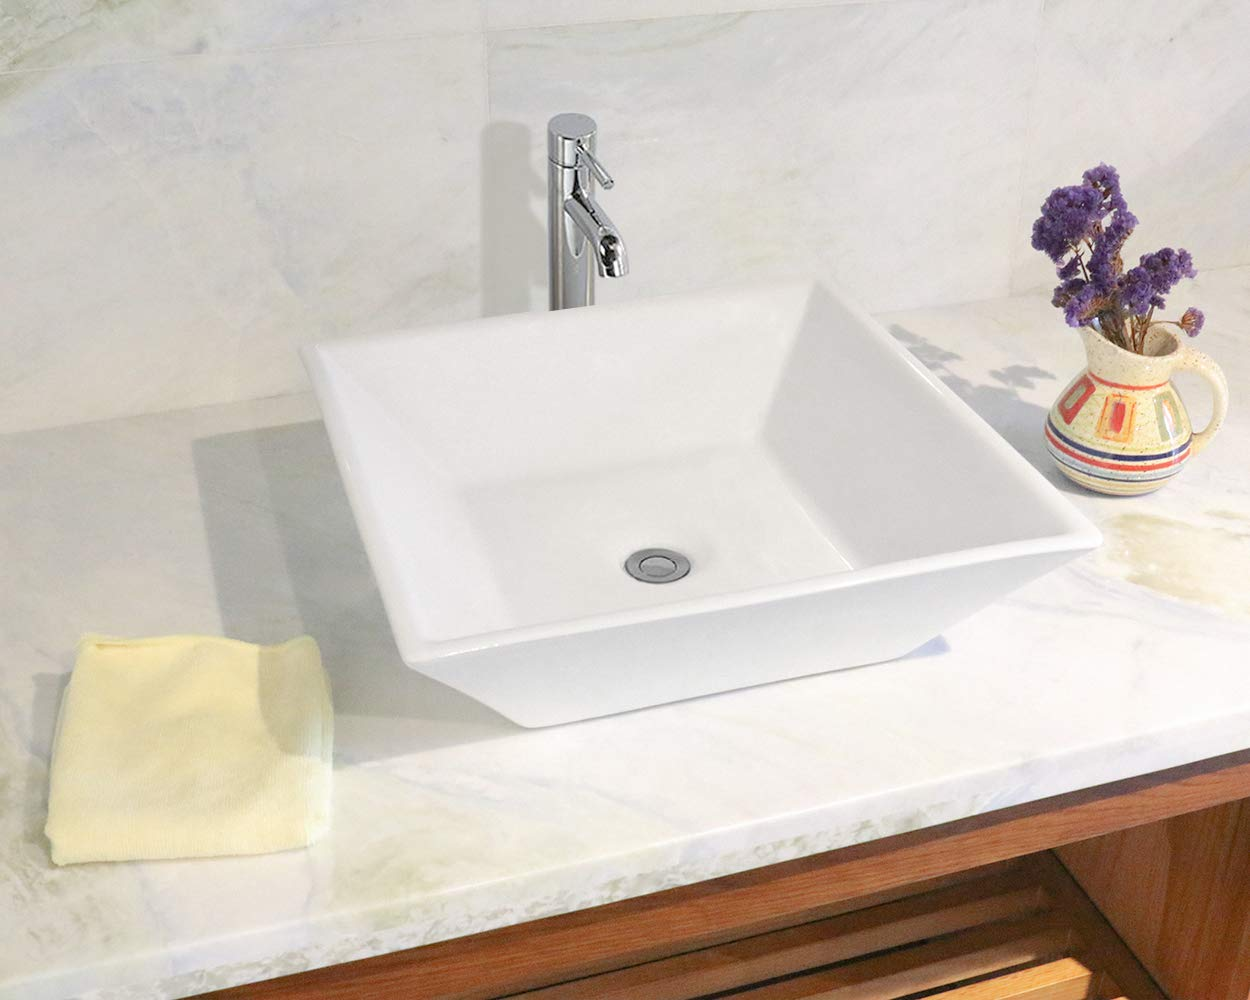 Bathroom clear boat oval Glass Vessel Vanity Sink TB15E3 Oil Rubbed Bronze Faucet